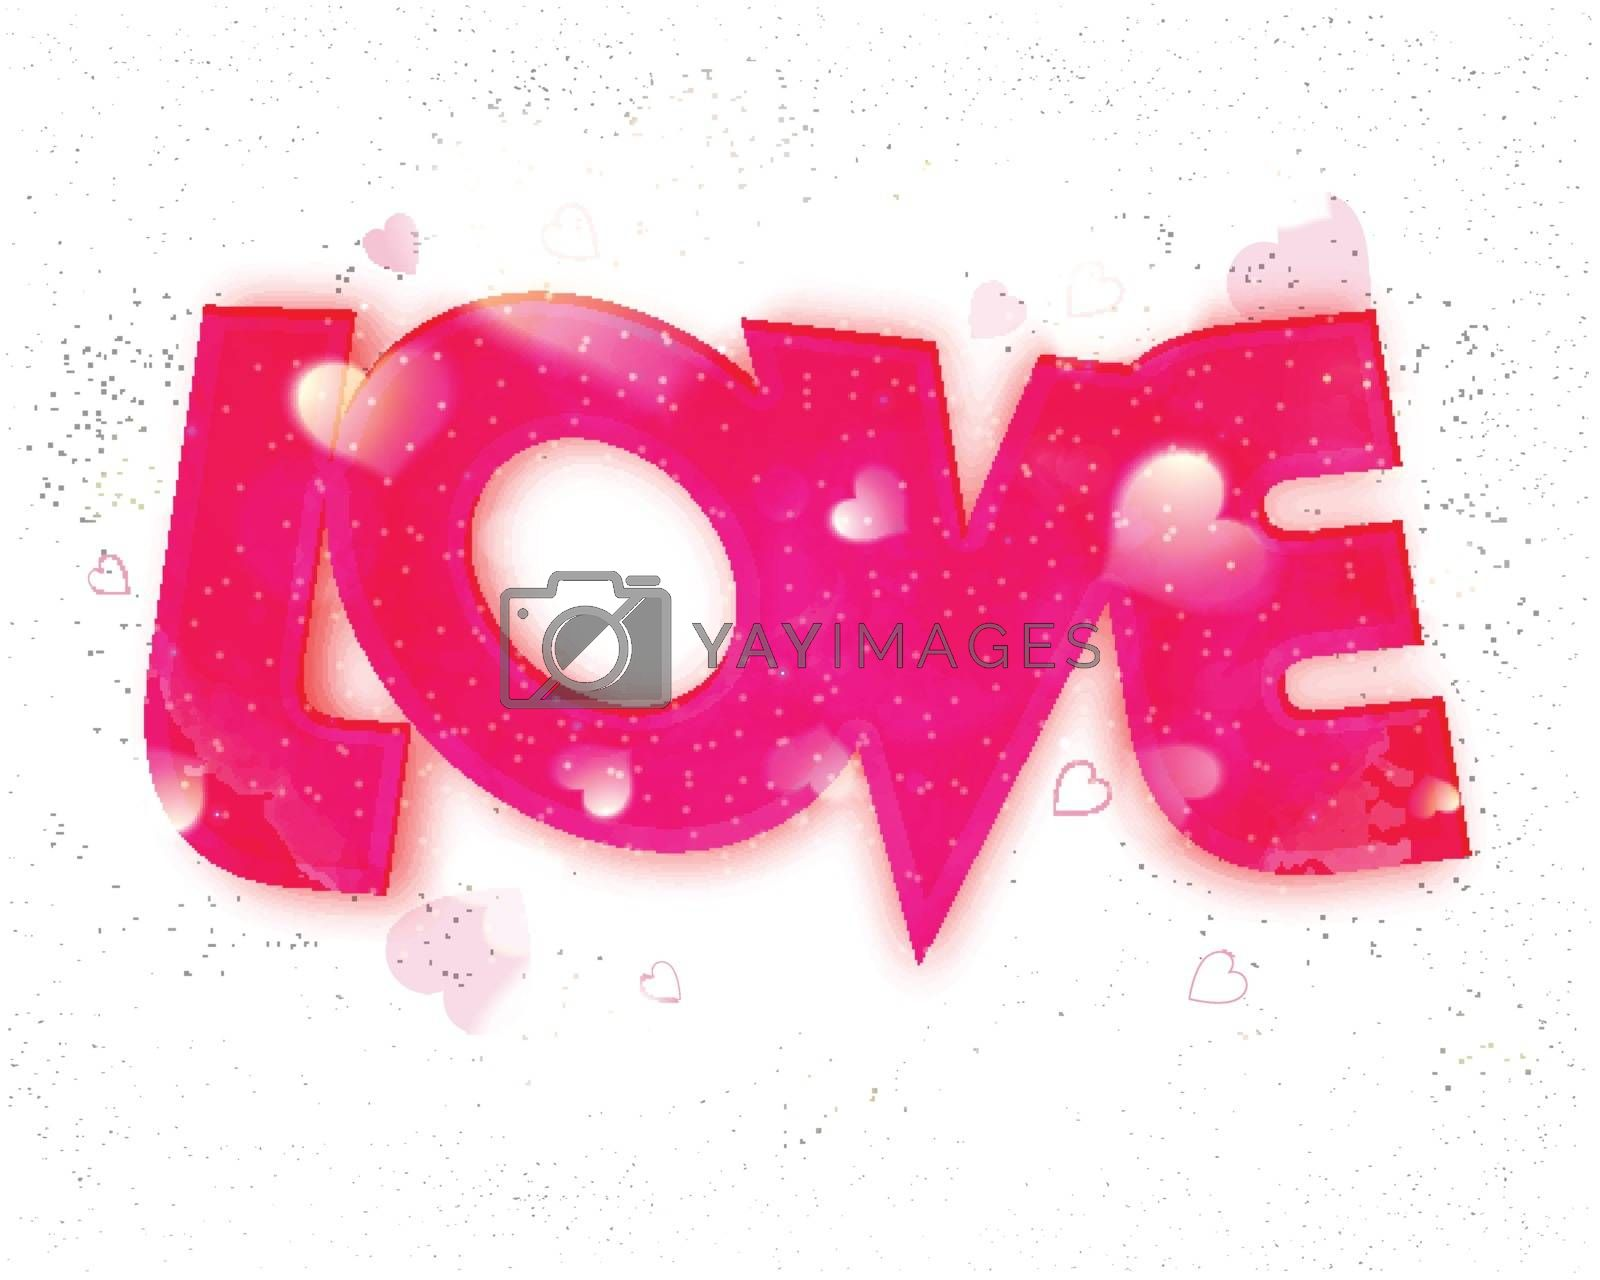 Creative Pink Text Love with Hearts for Valentine's Day celebration.